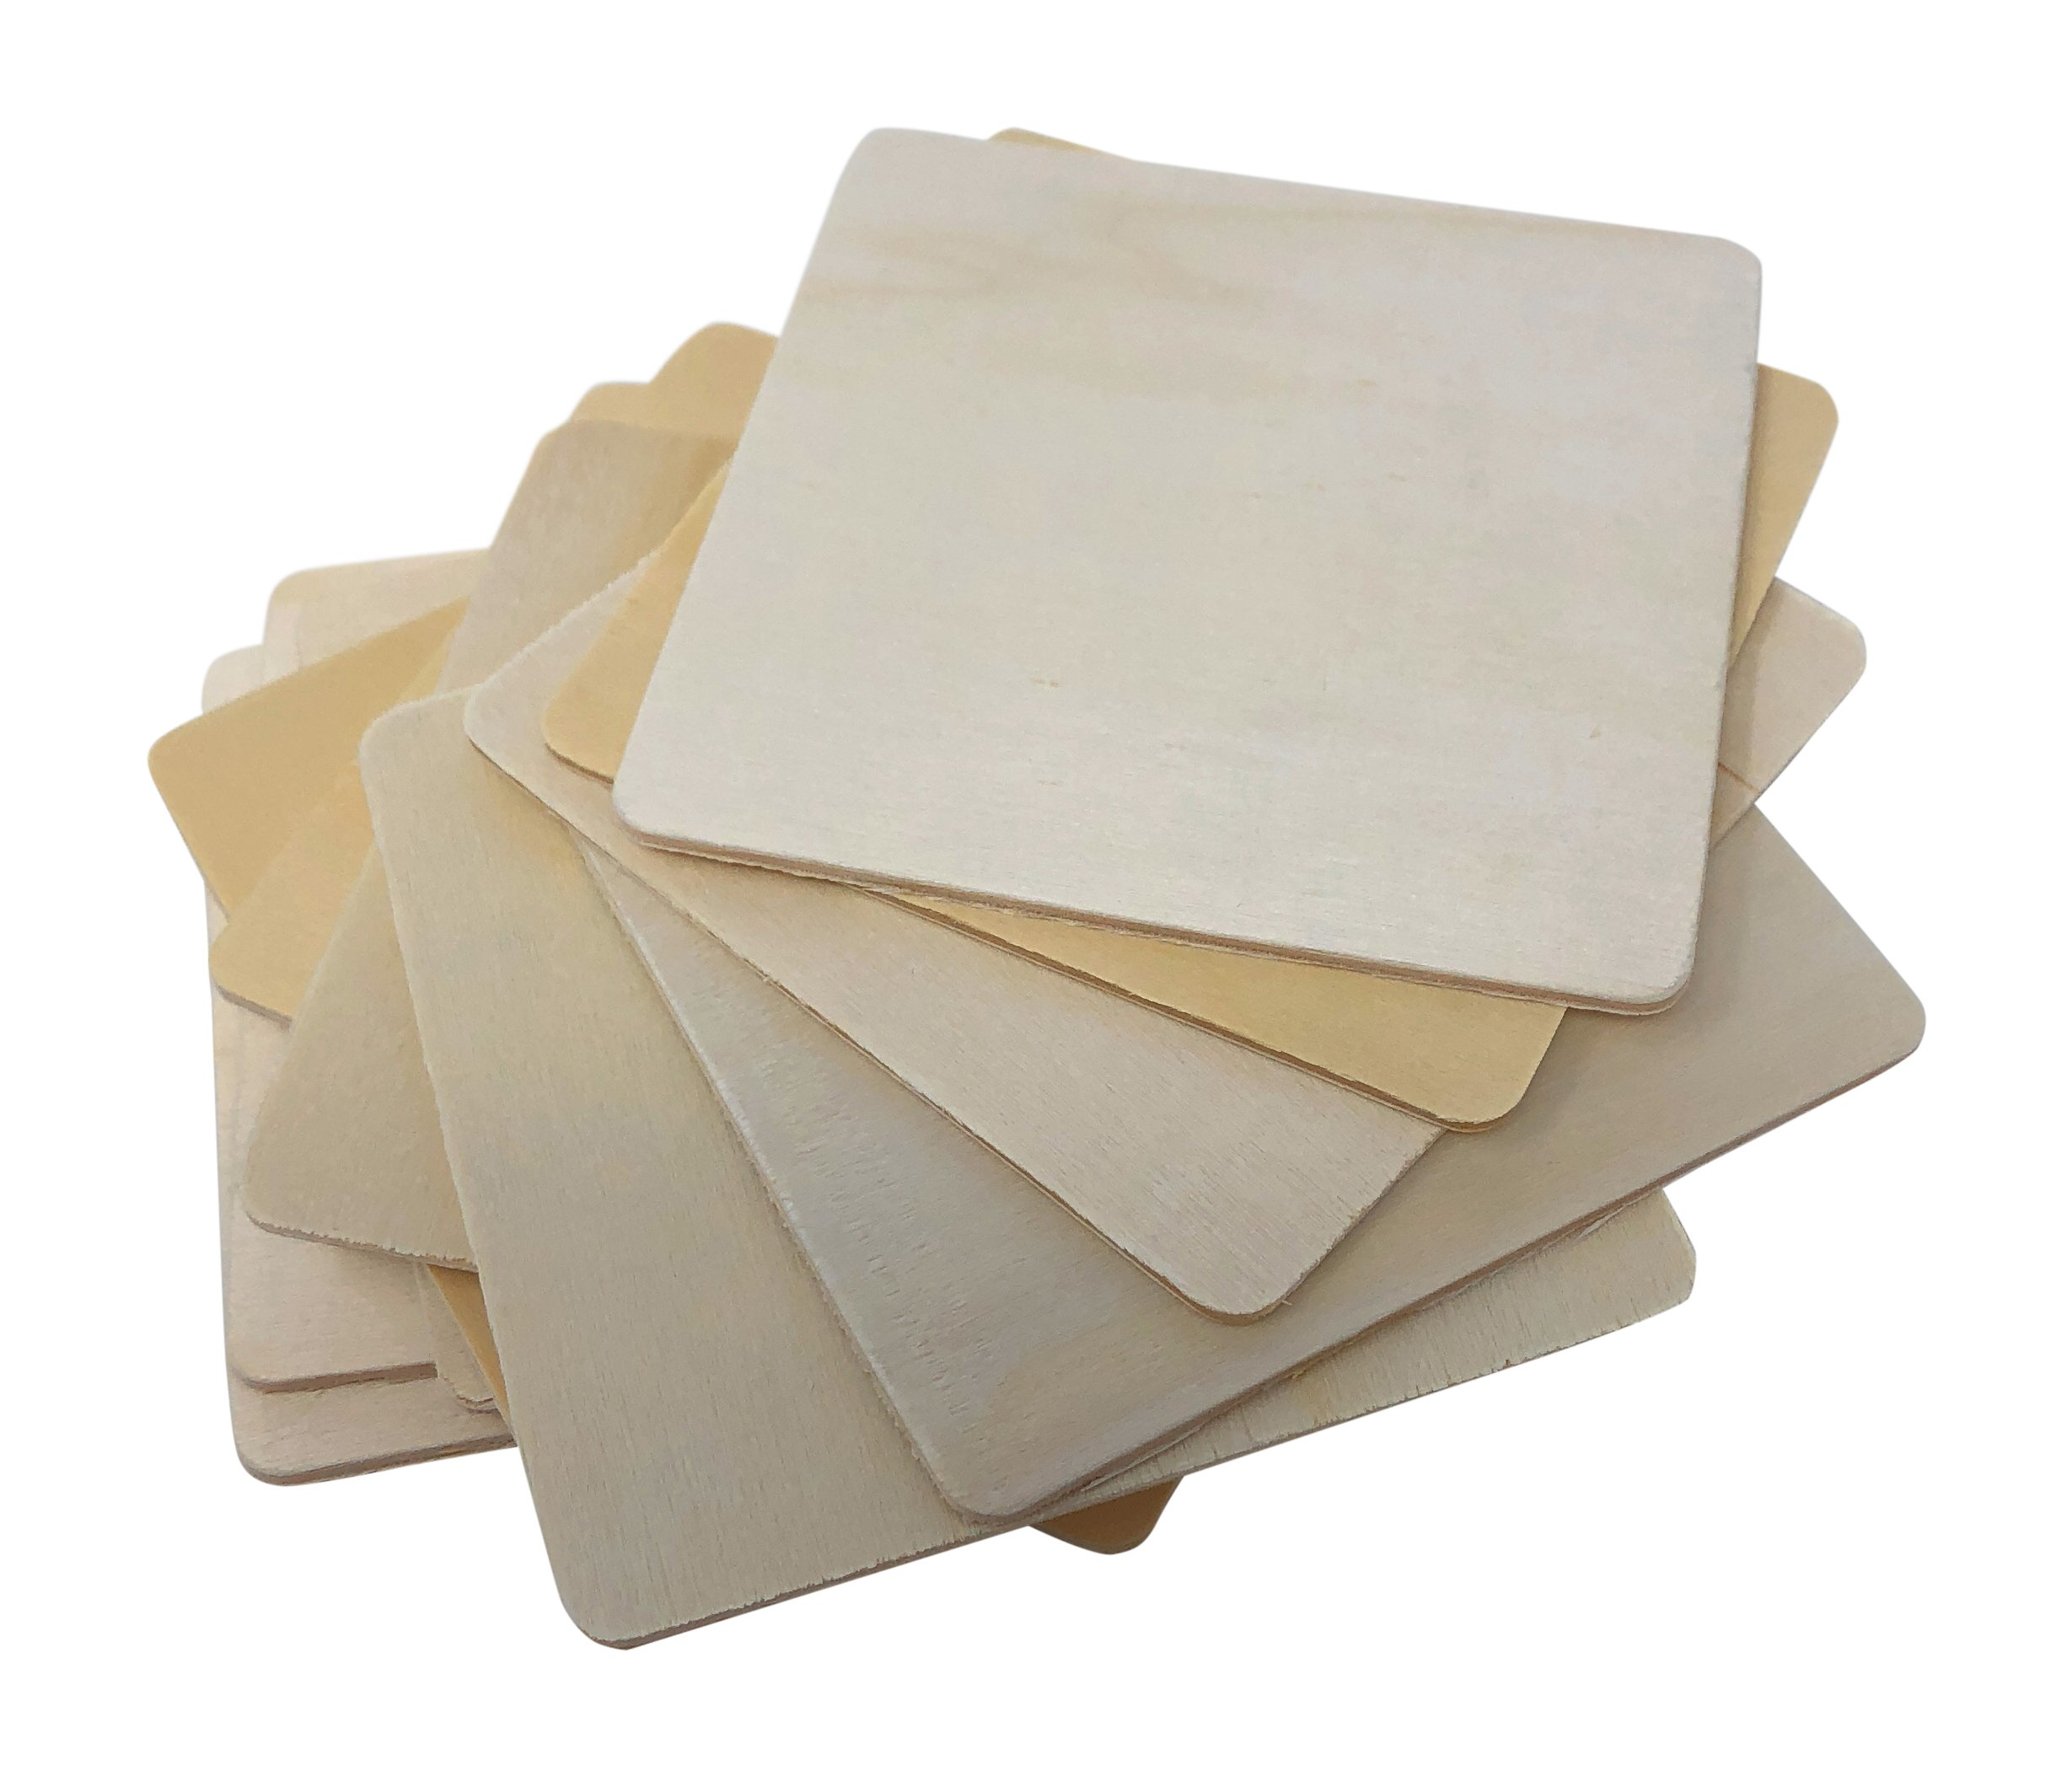 12 Piece Birch Wood Craft Unfinished Blank Coasters 4 x 4 for Craft Projects with Instruction Sheet by Nickanny's